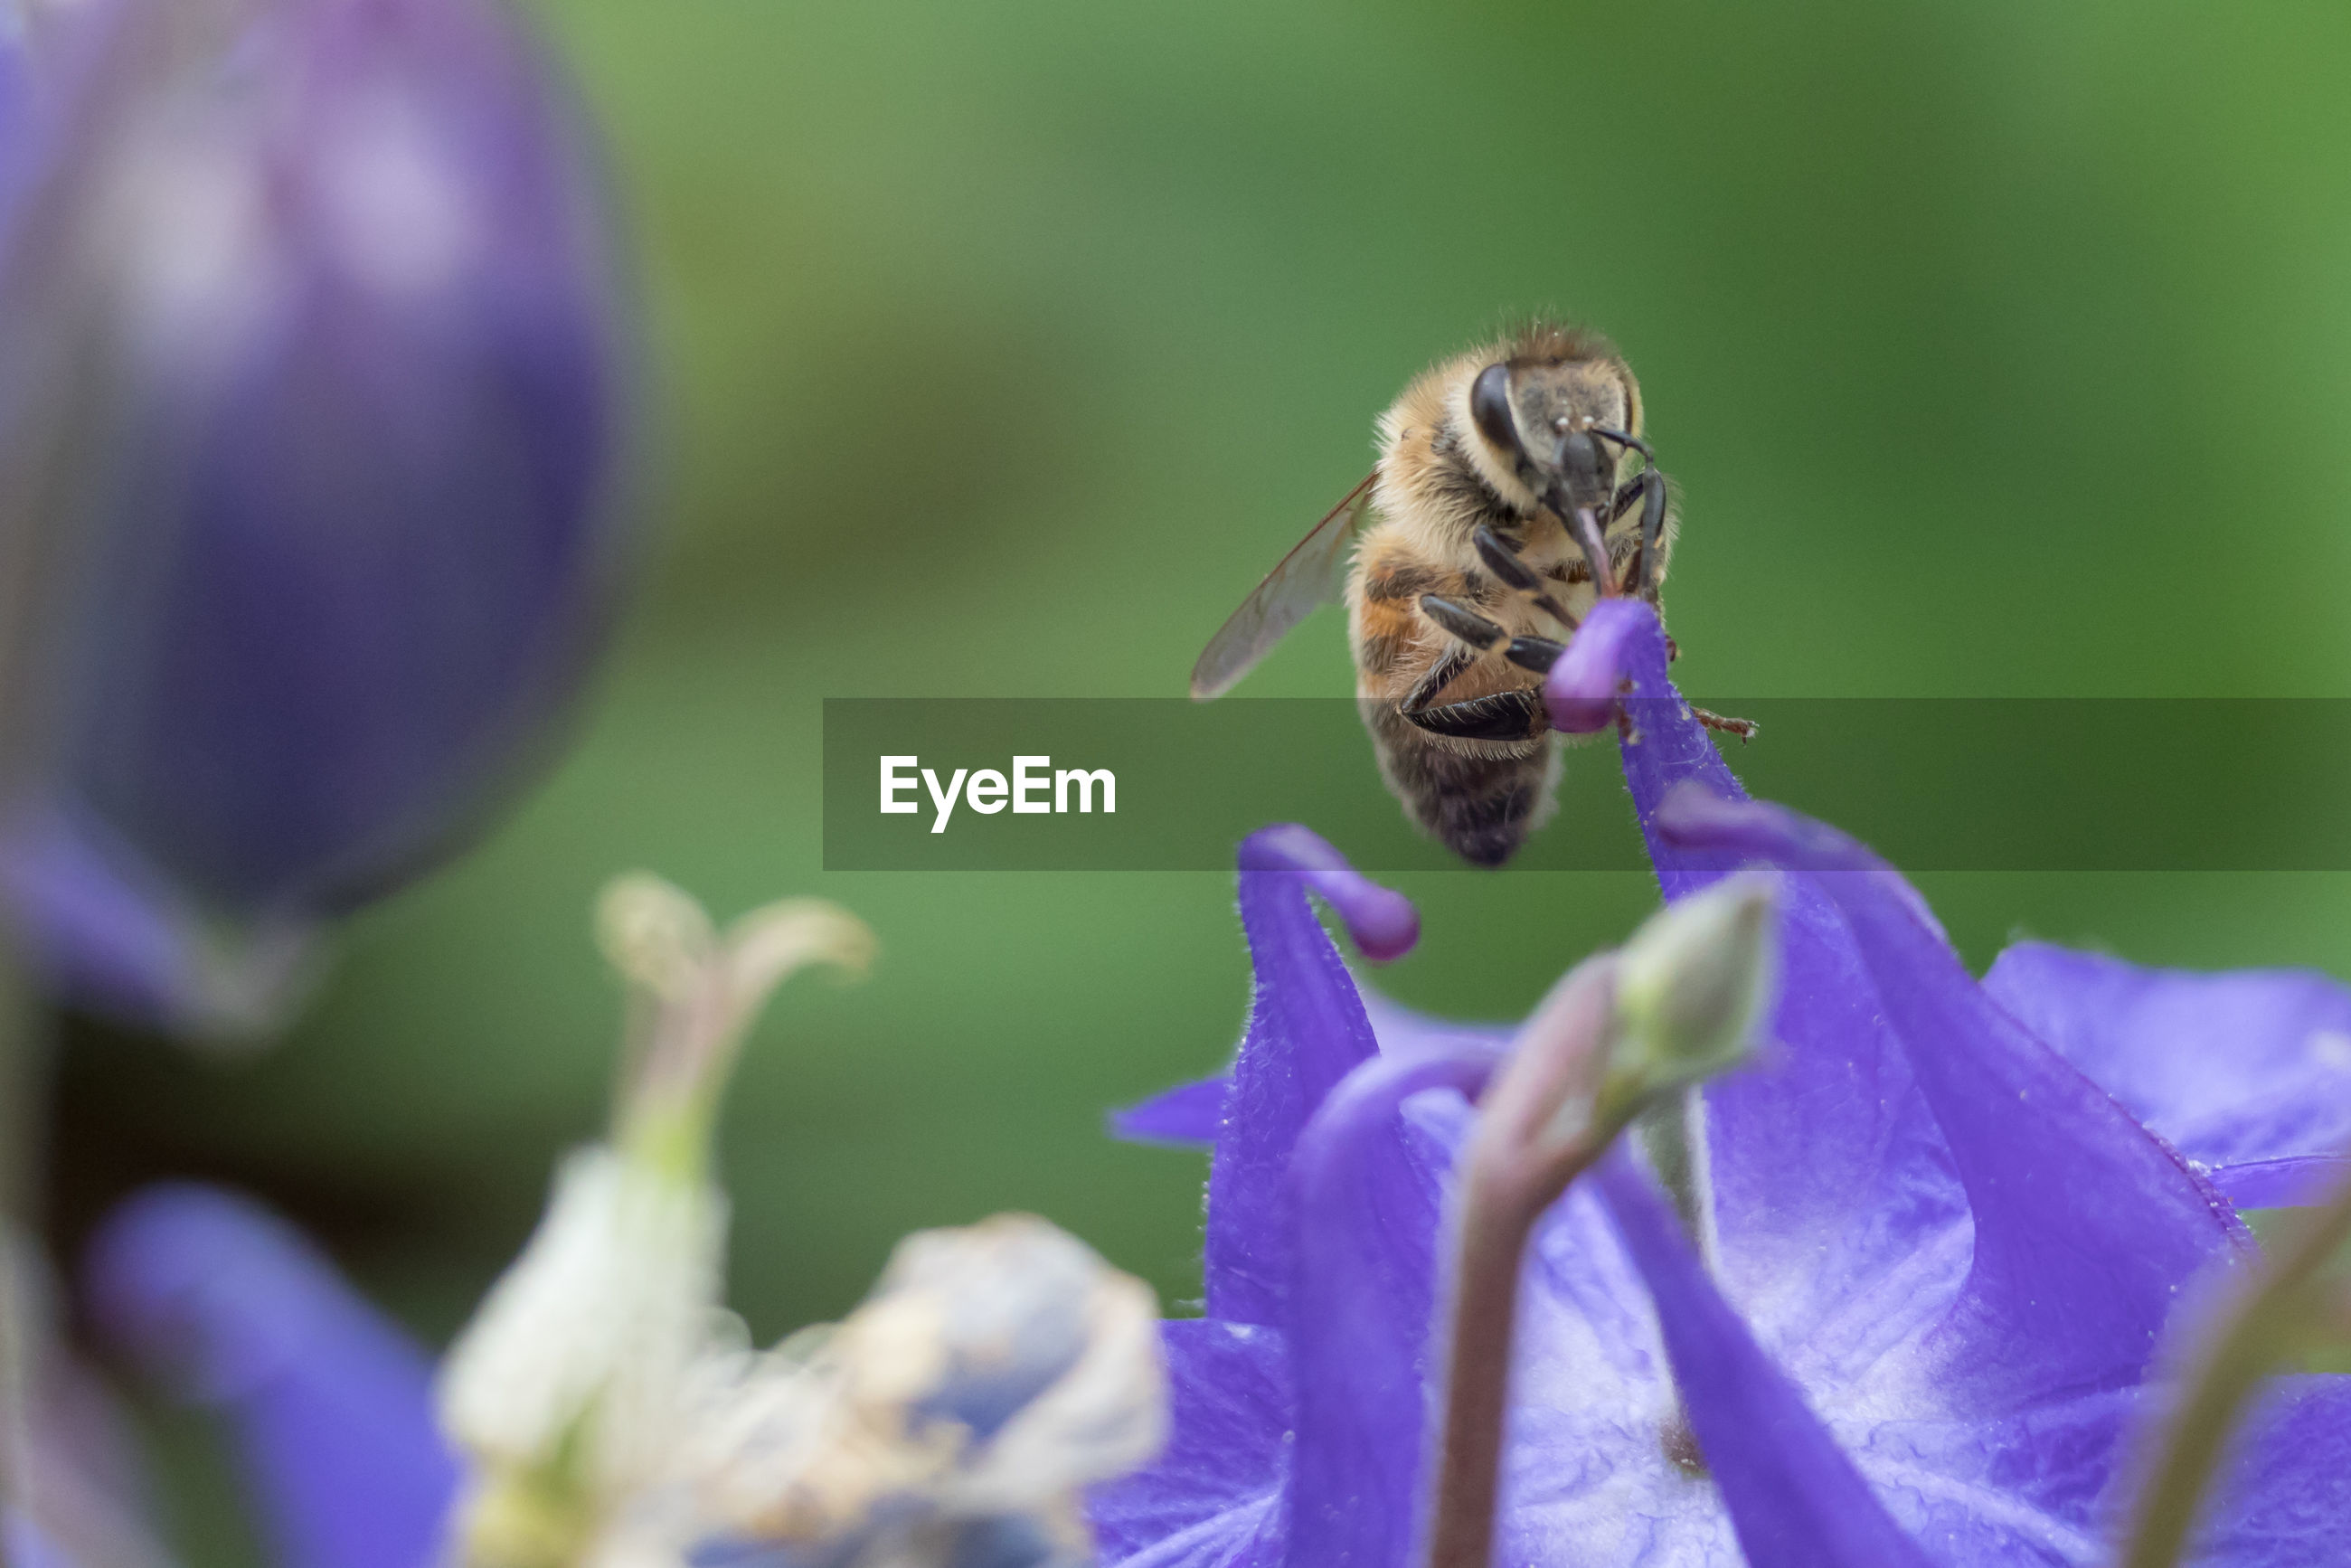 CLOSE-UP OF HONEY BEE ON PURPLE FLOWER